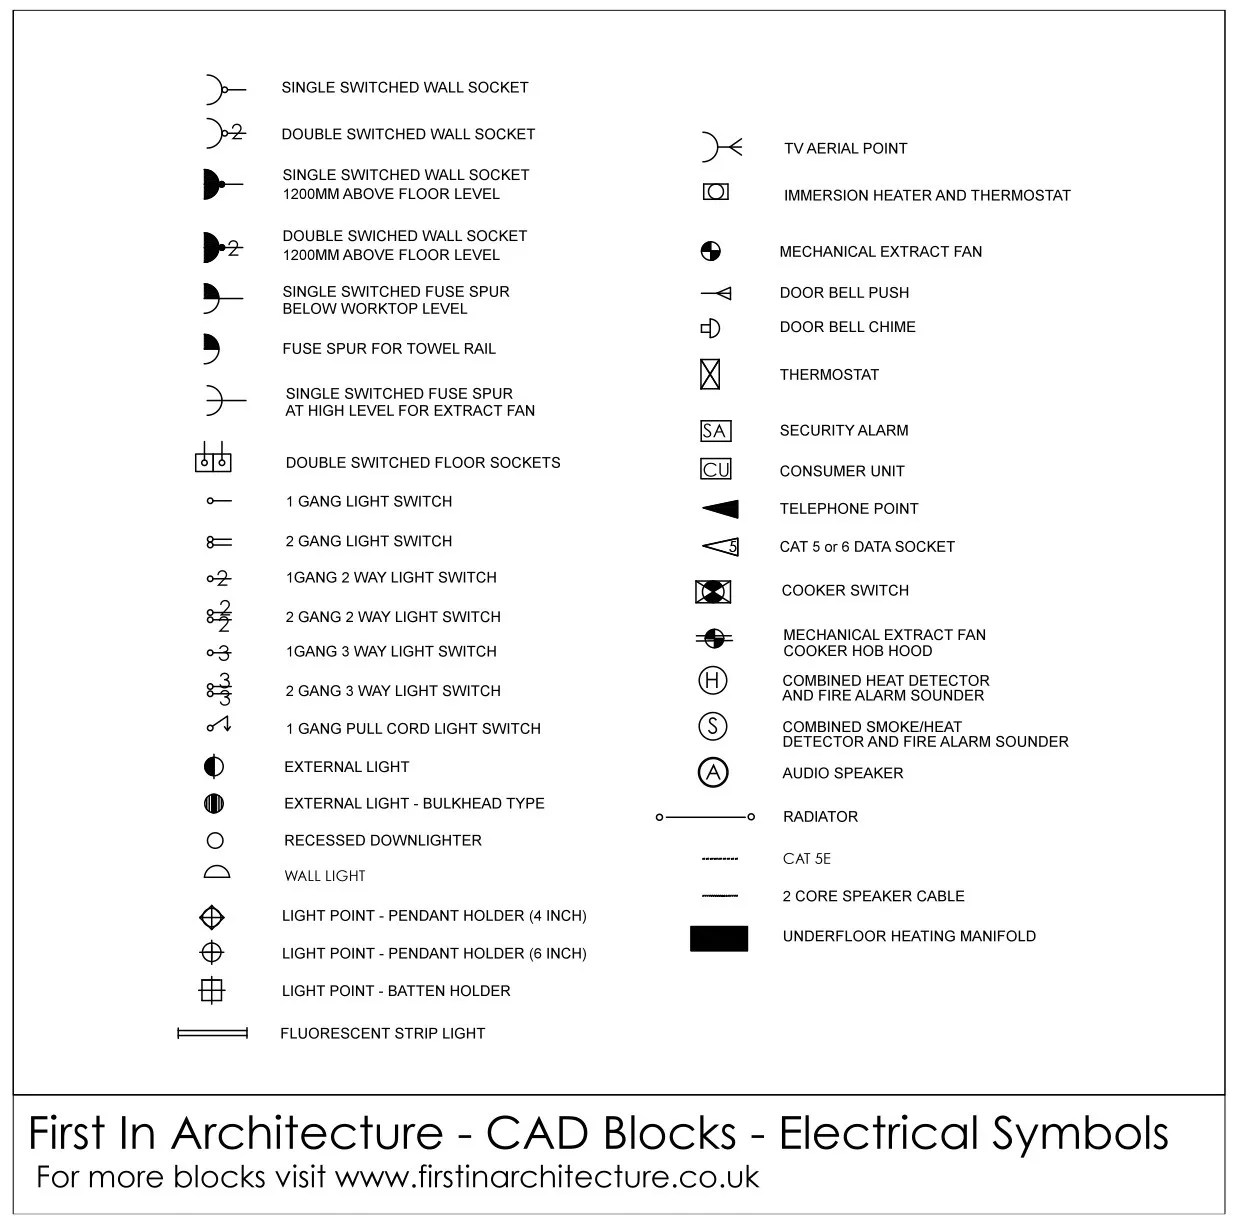 small resolution of free cad blocks electrical symbols rh firstinarchitecture co uk electrical wiring diagrams symbols chart blueprint diagram example